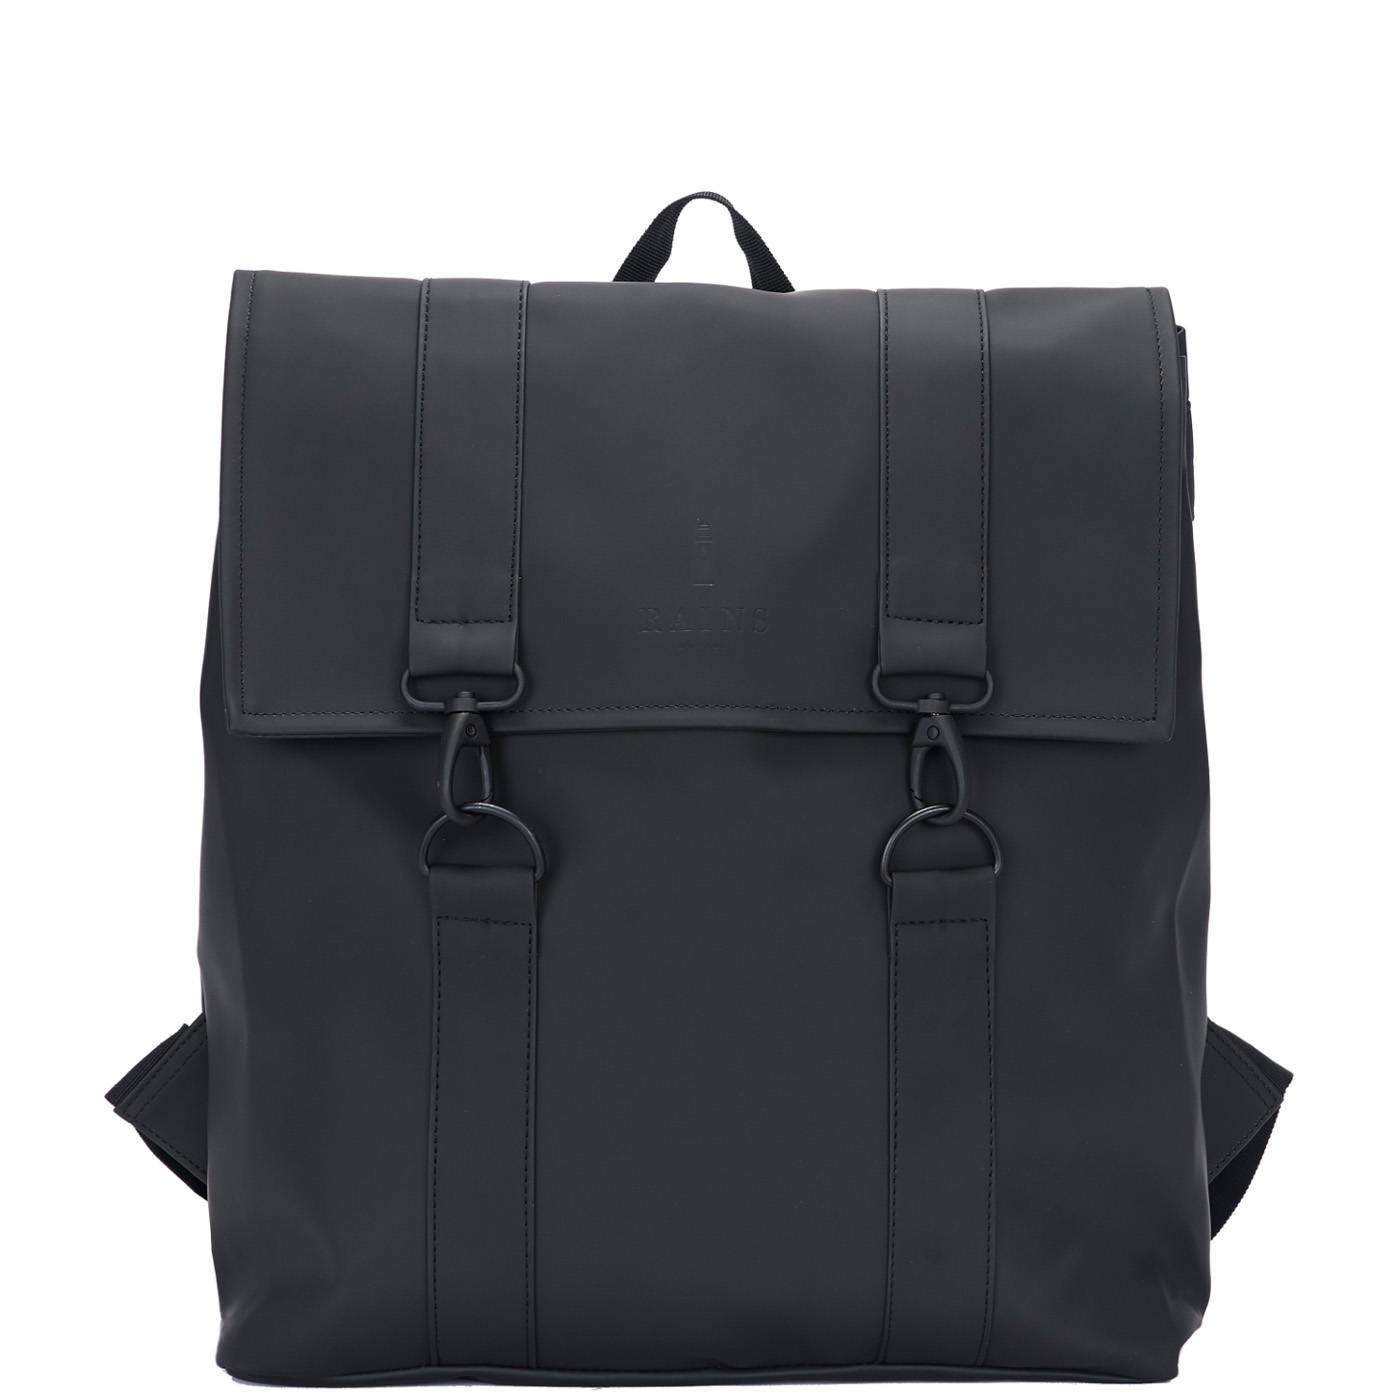 Rains Msn Bag Black Rugzak R1213-01